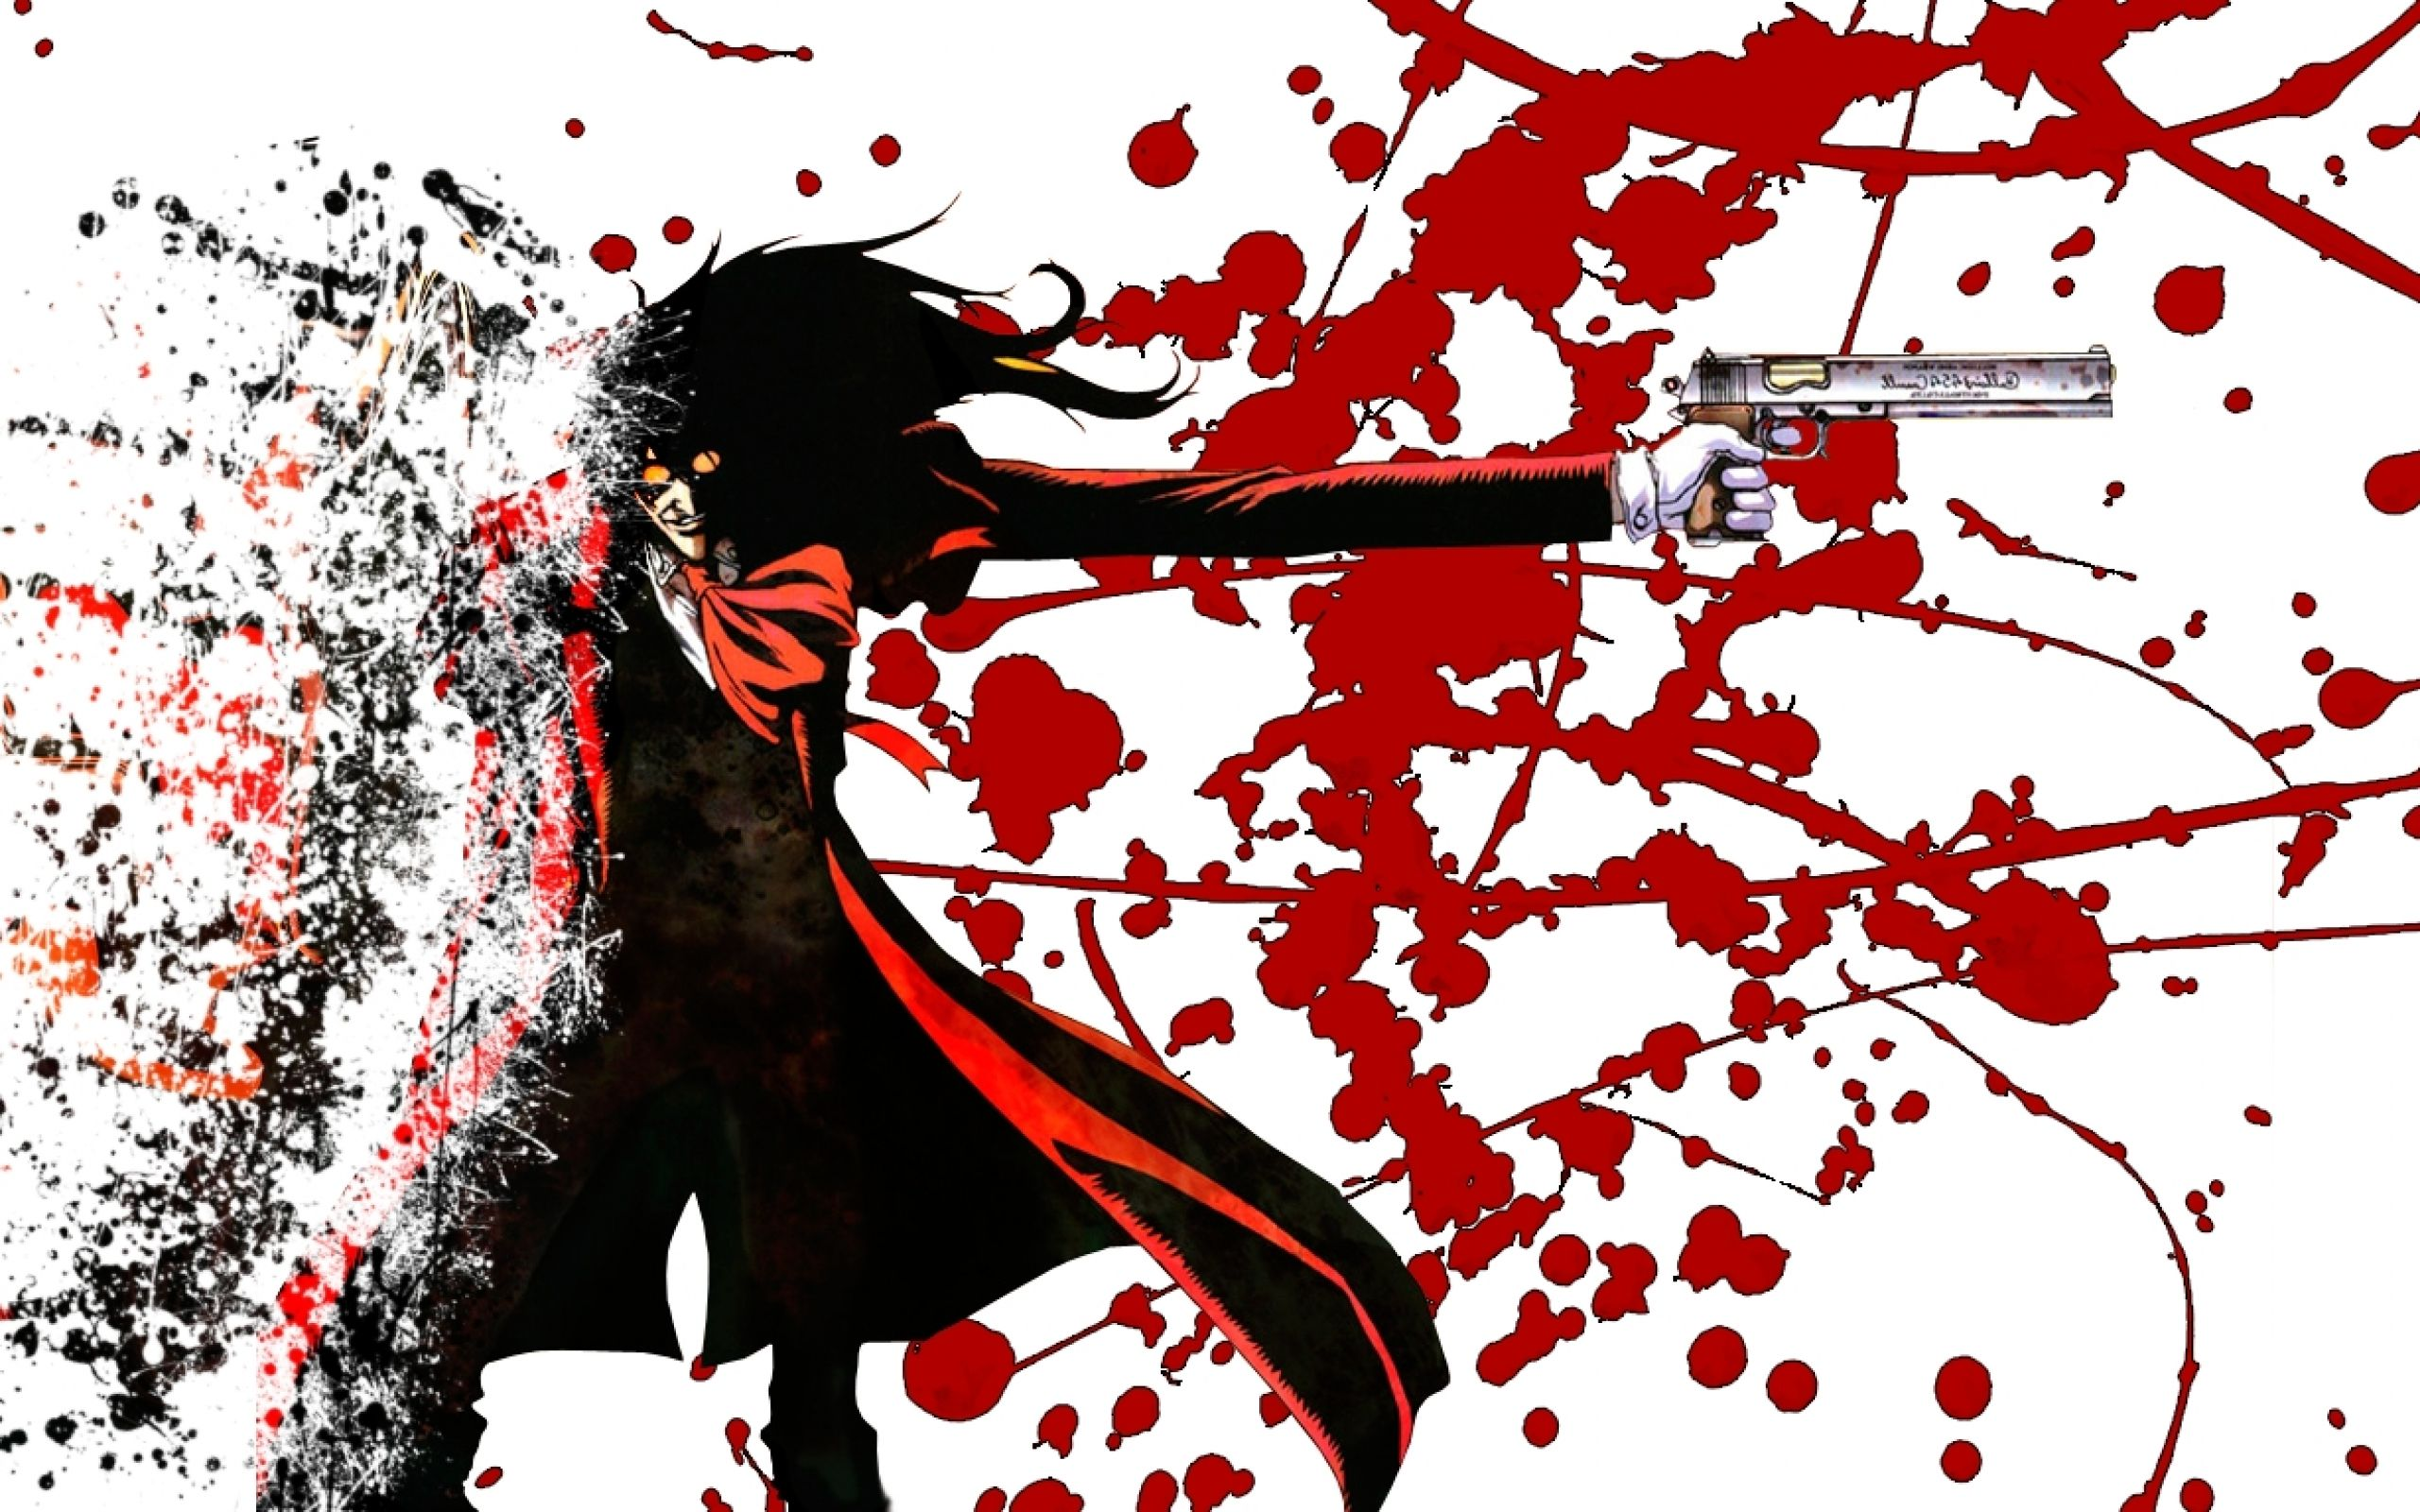 Mikasa Ackerman/#1575837 - Zerochan